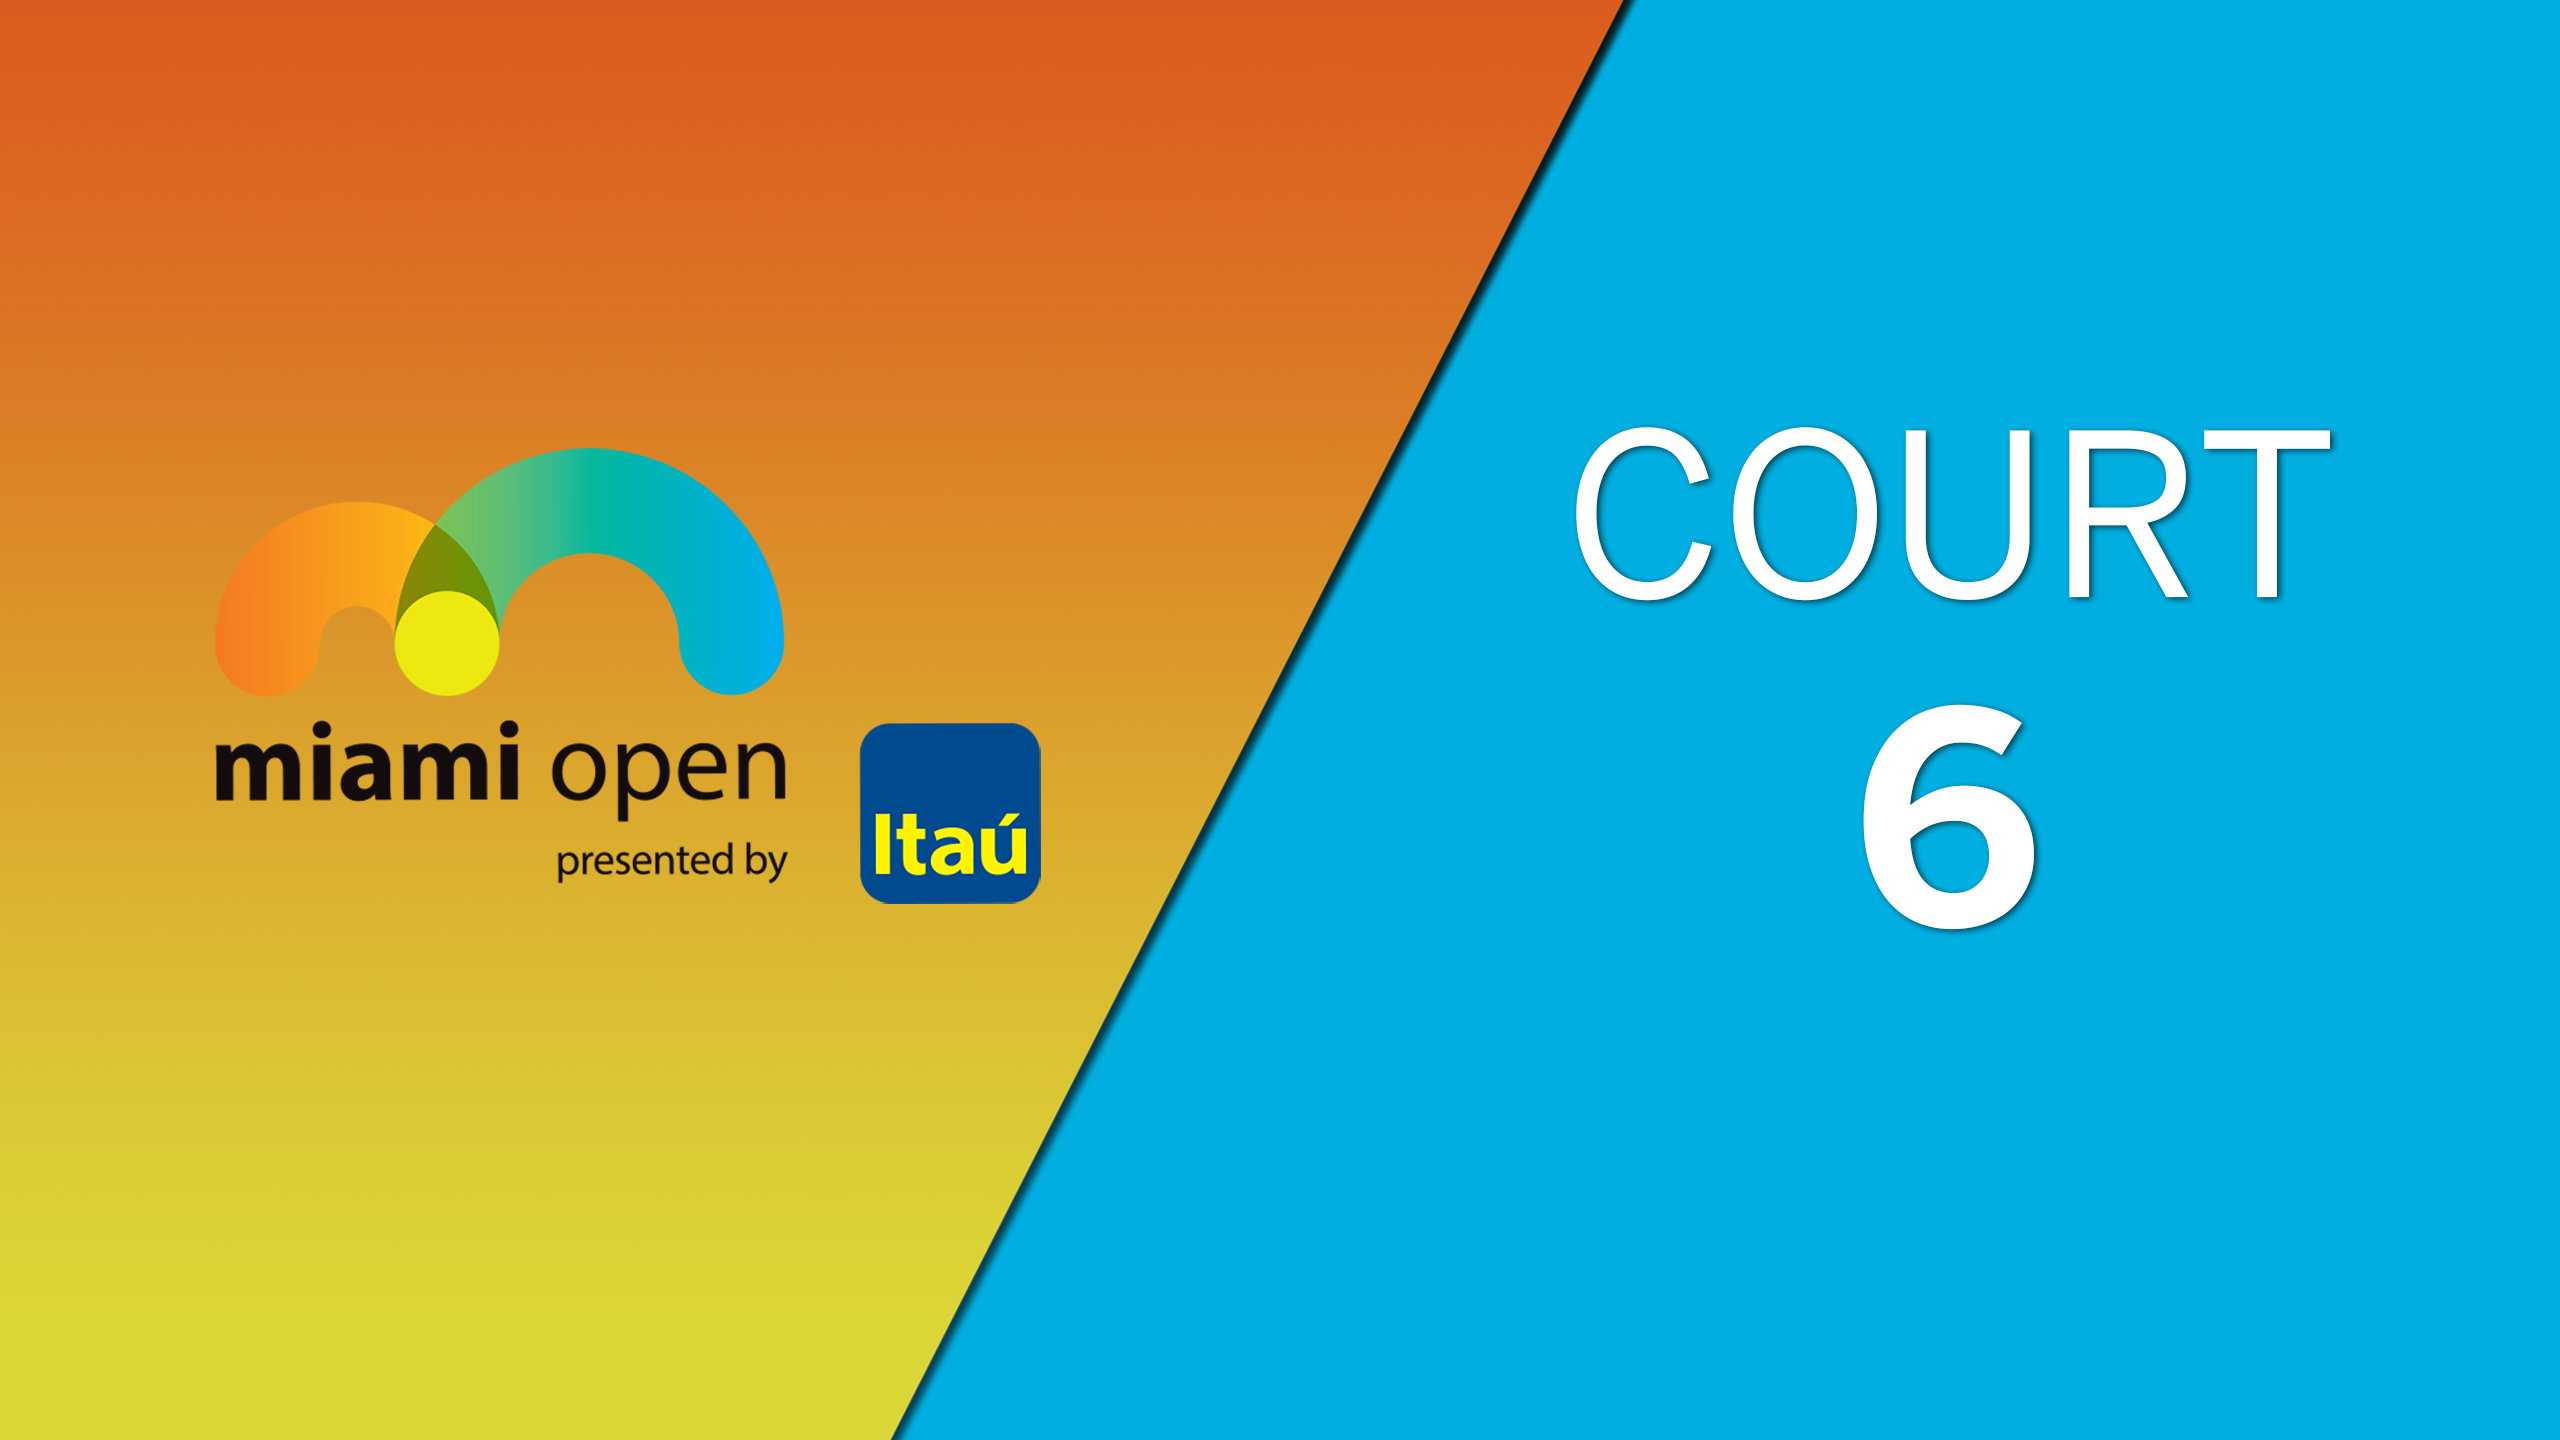 ATP: Court 6 - Miami Open